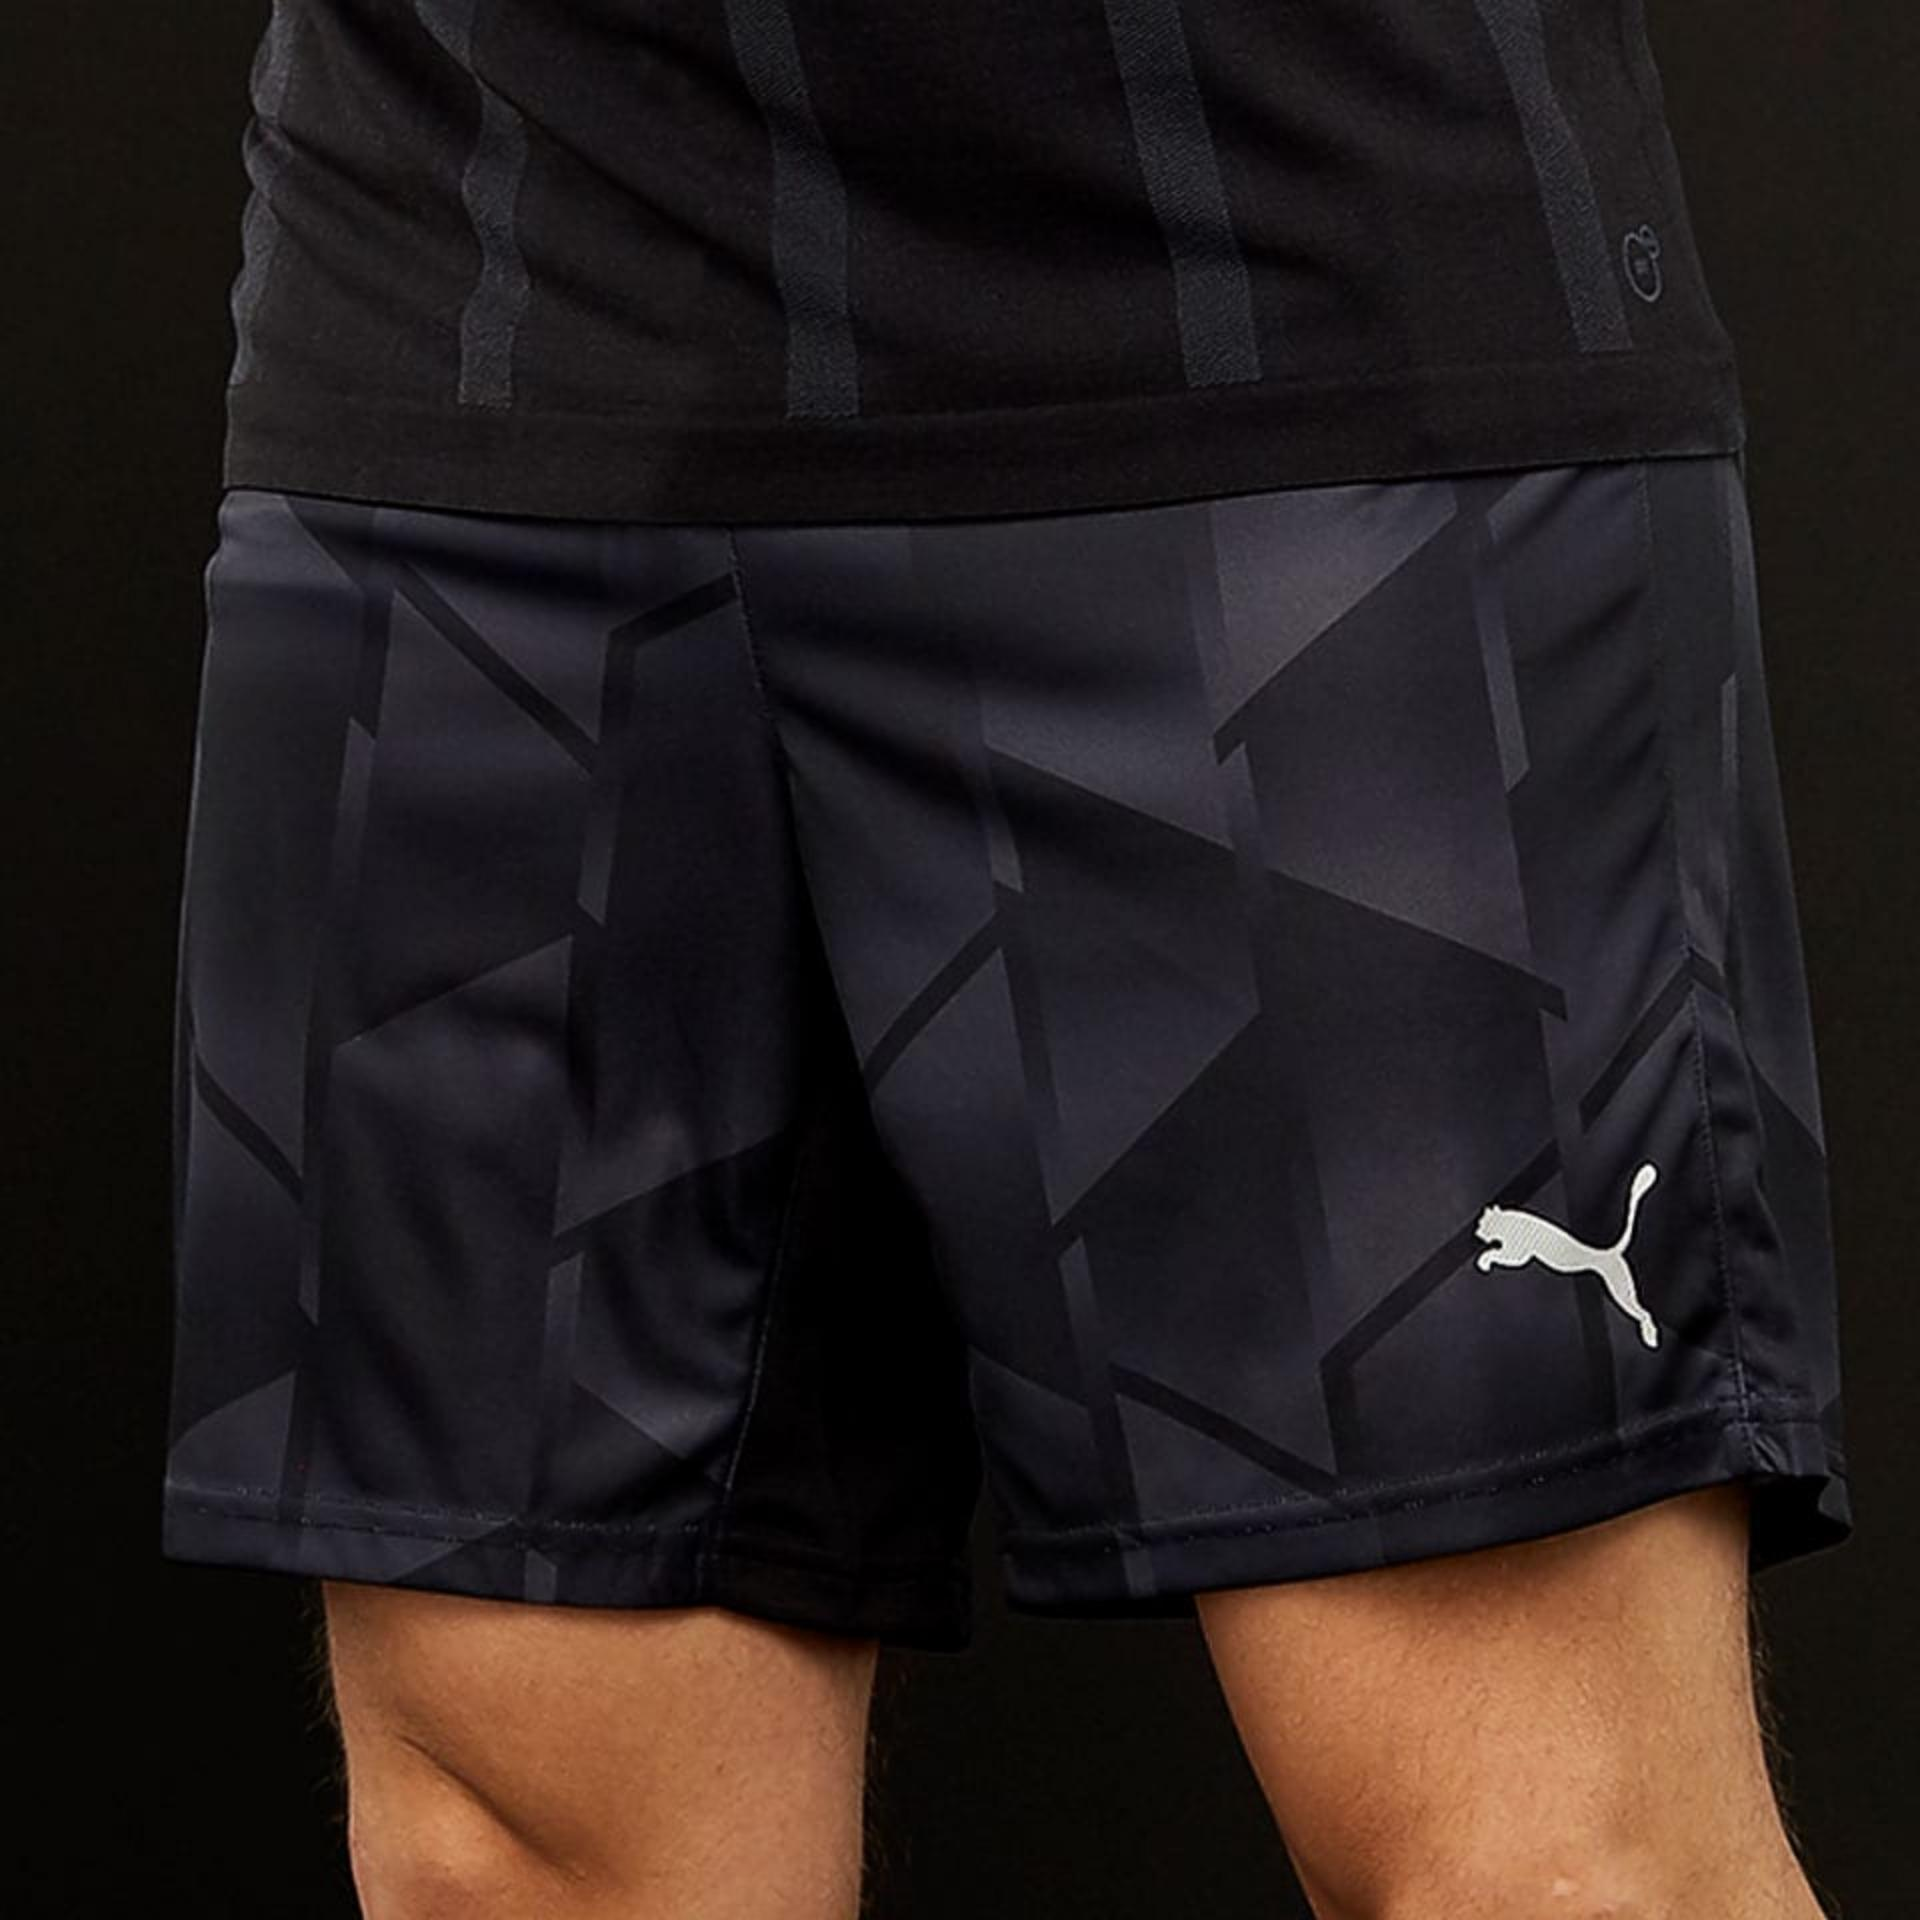 Who Sells Puma Ftblnxt Pro Soccer Shorts Puma Black The Cheapest